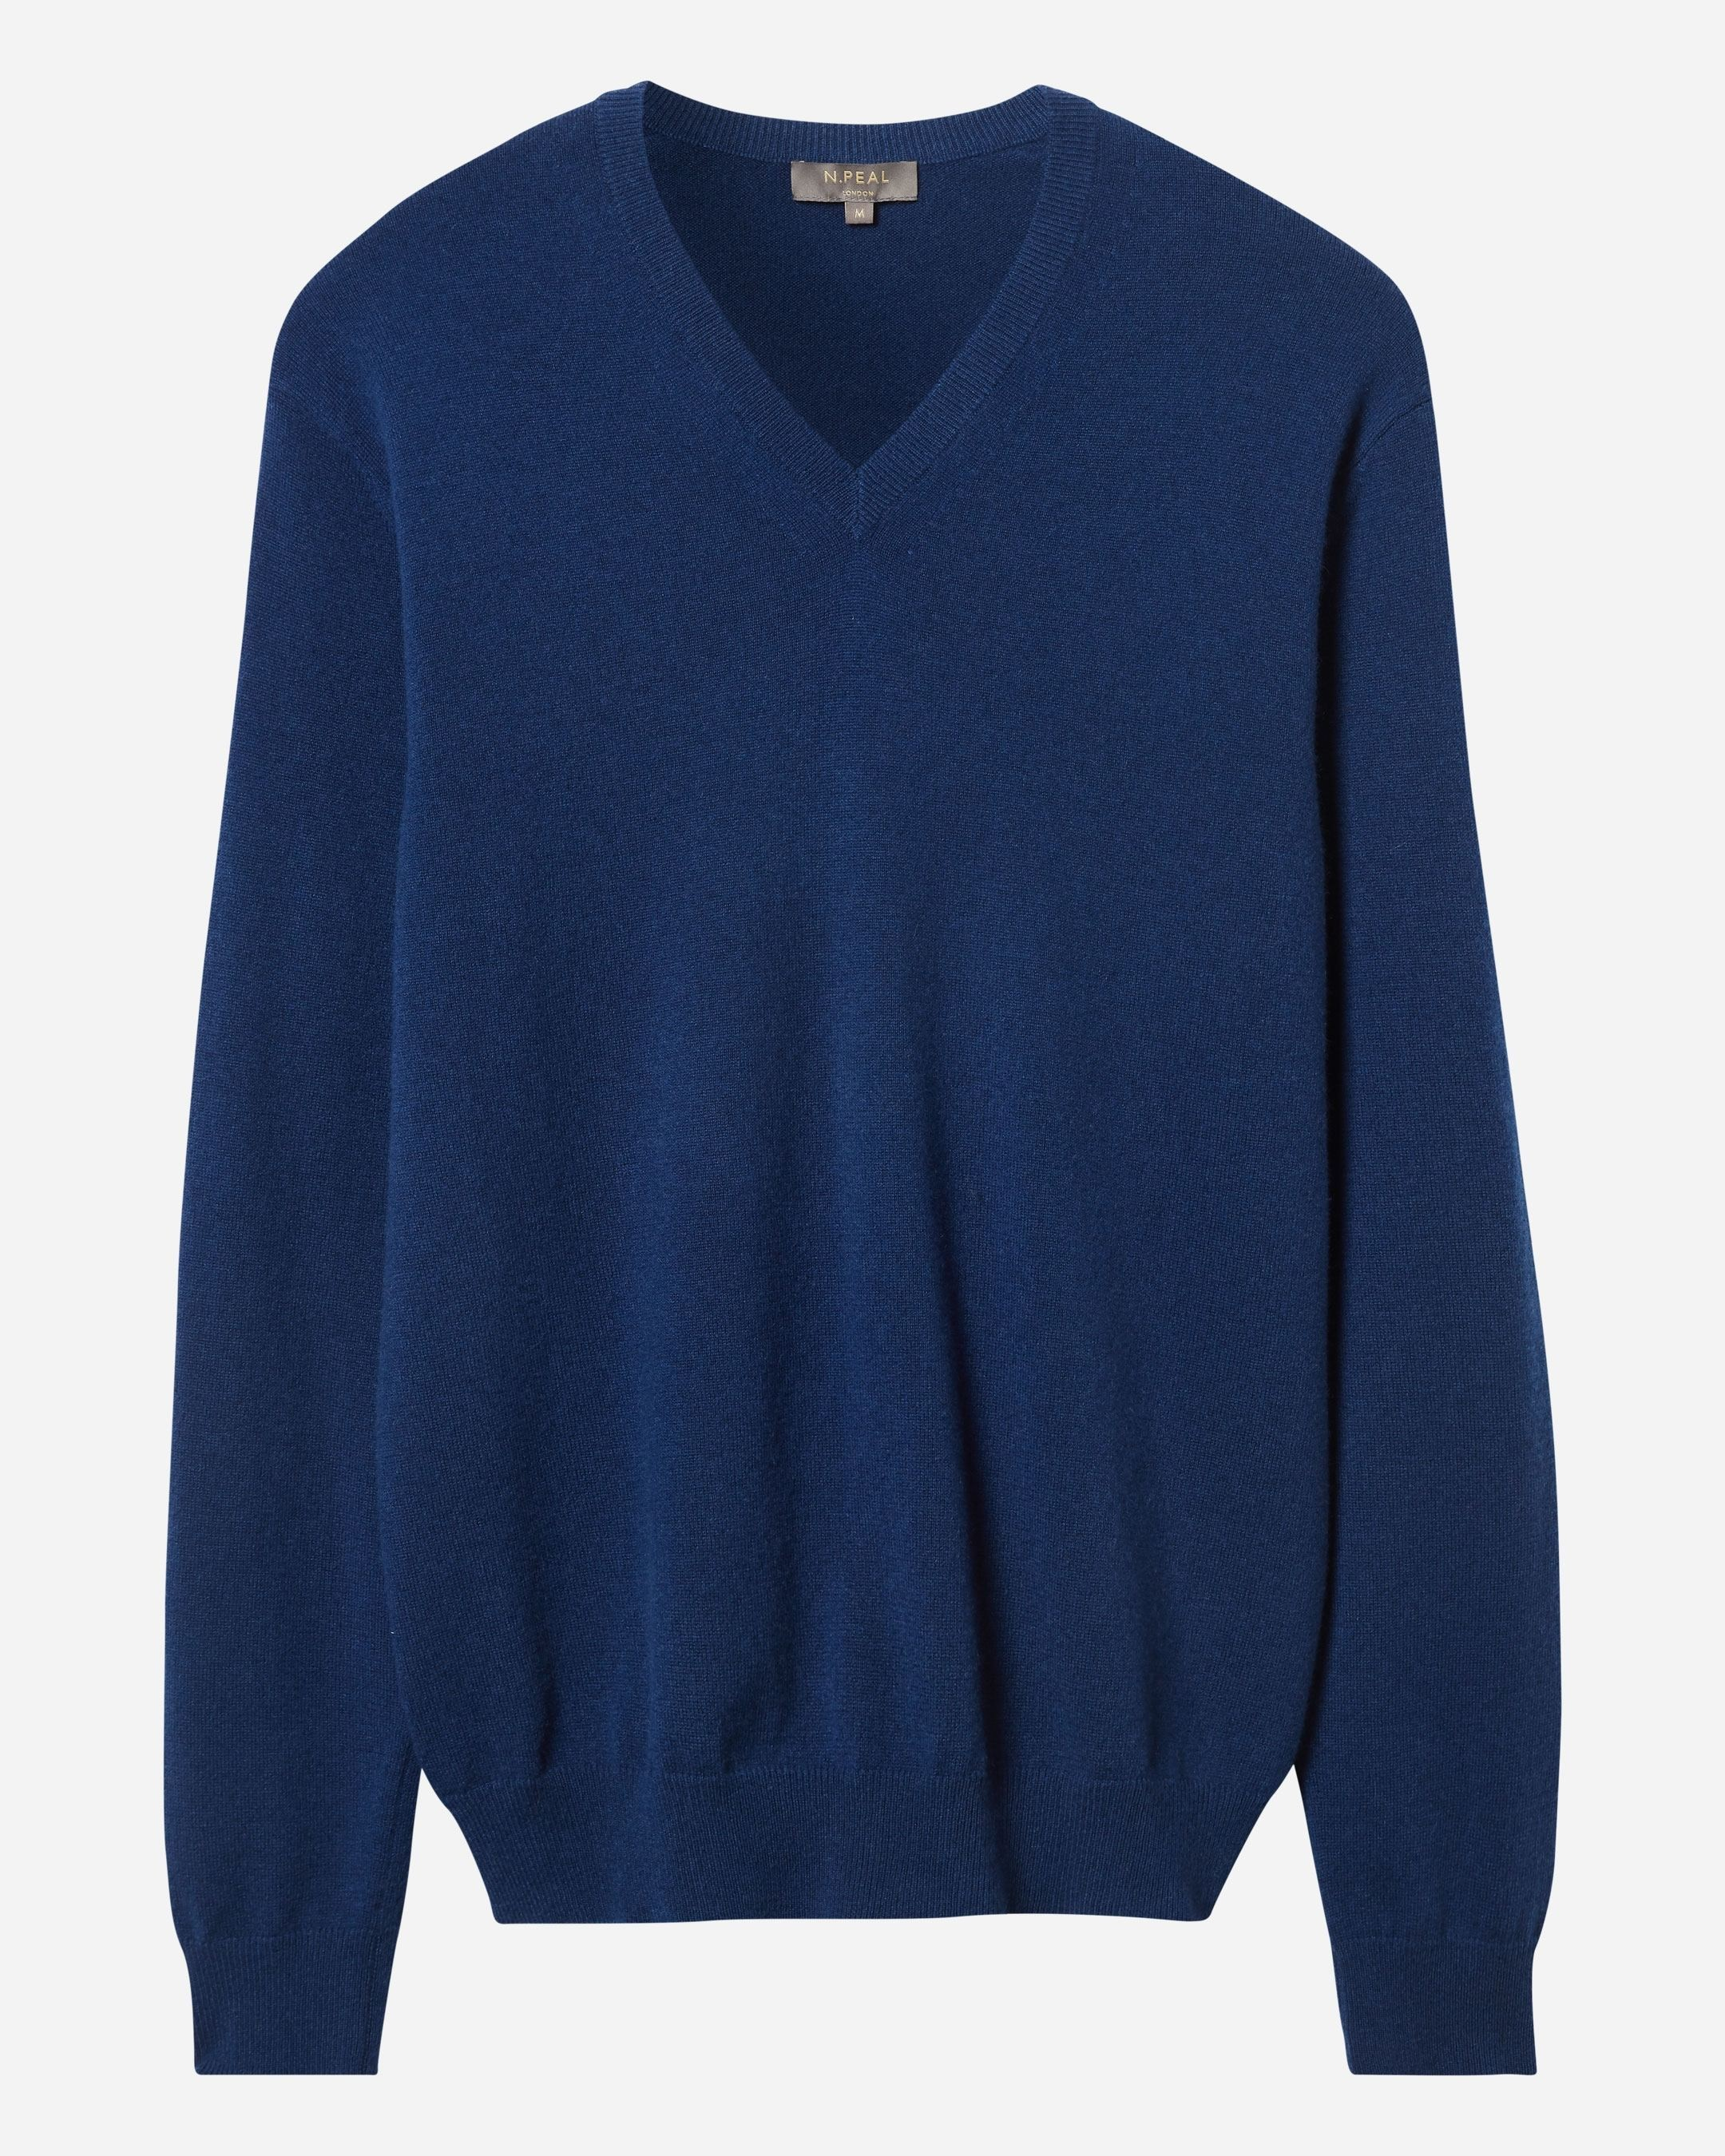 n peal v neck sweater